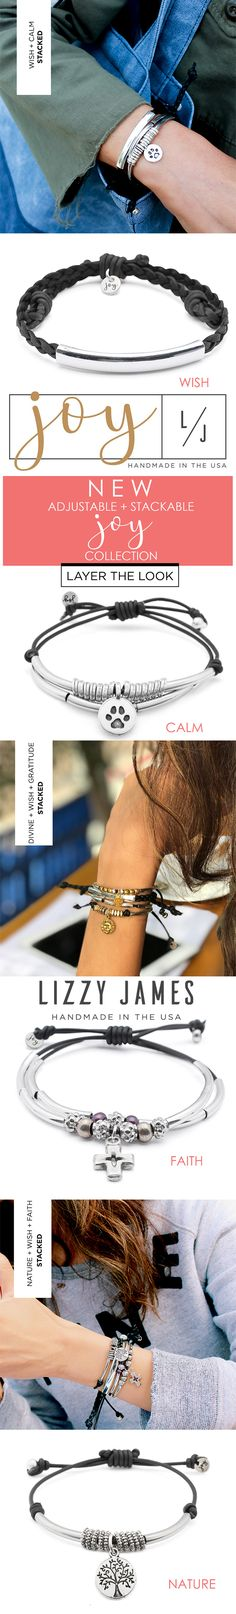 NEW for 2018! Featuring stylish, stackable and adjustable leather bracelets from Lizzy James Jewelry, handcrafted in the USA